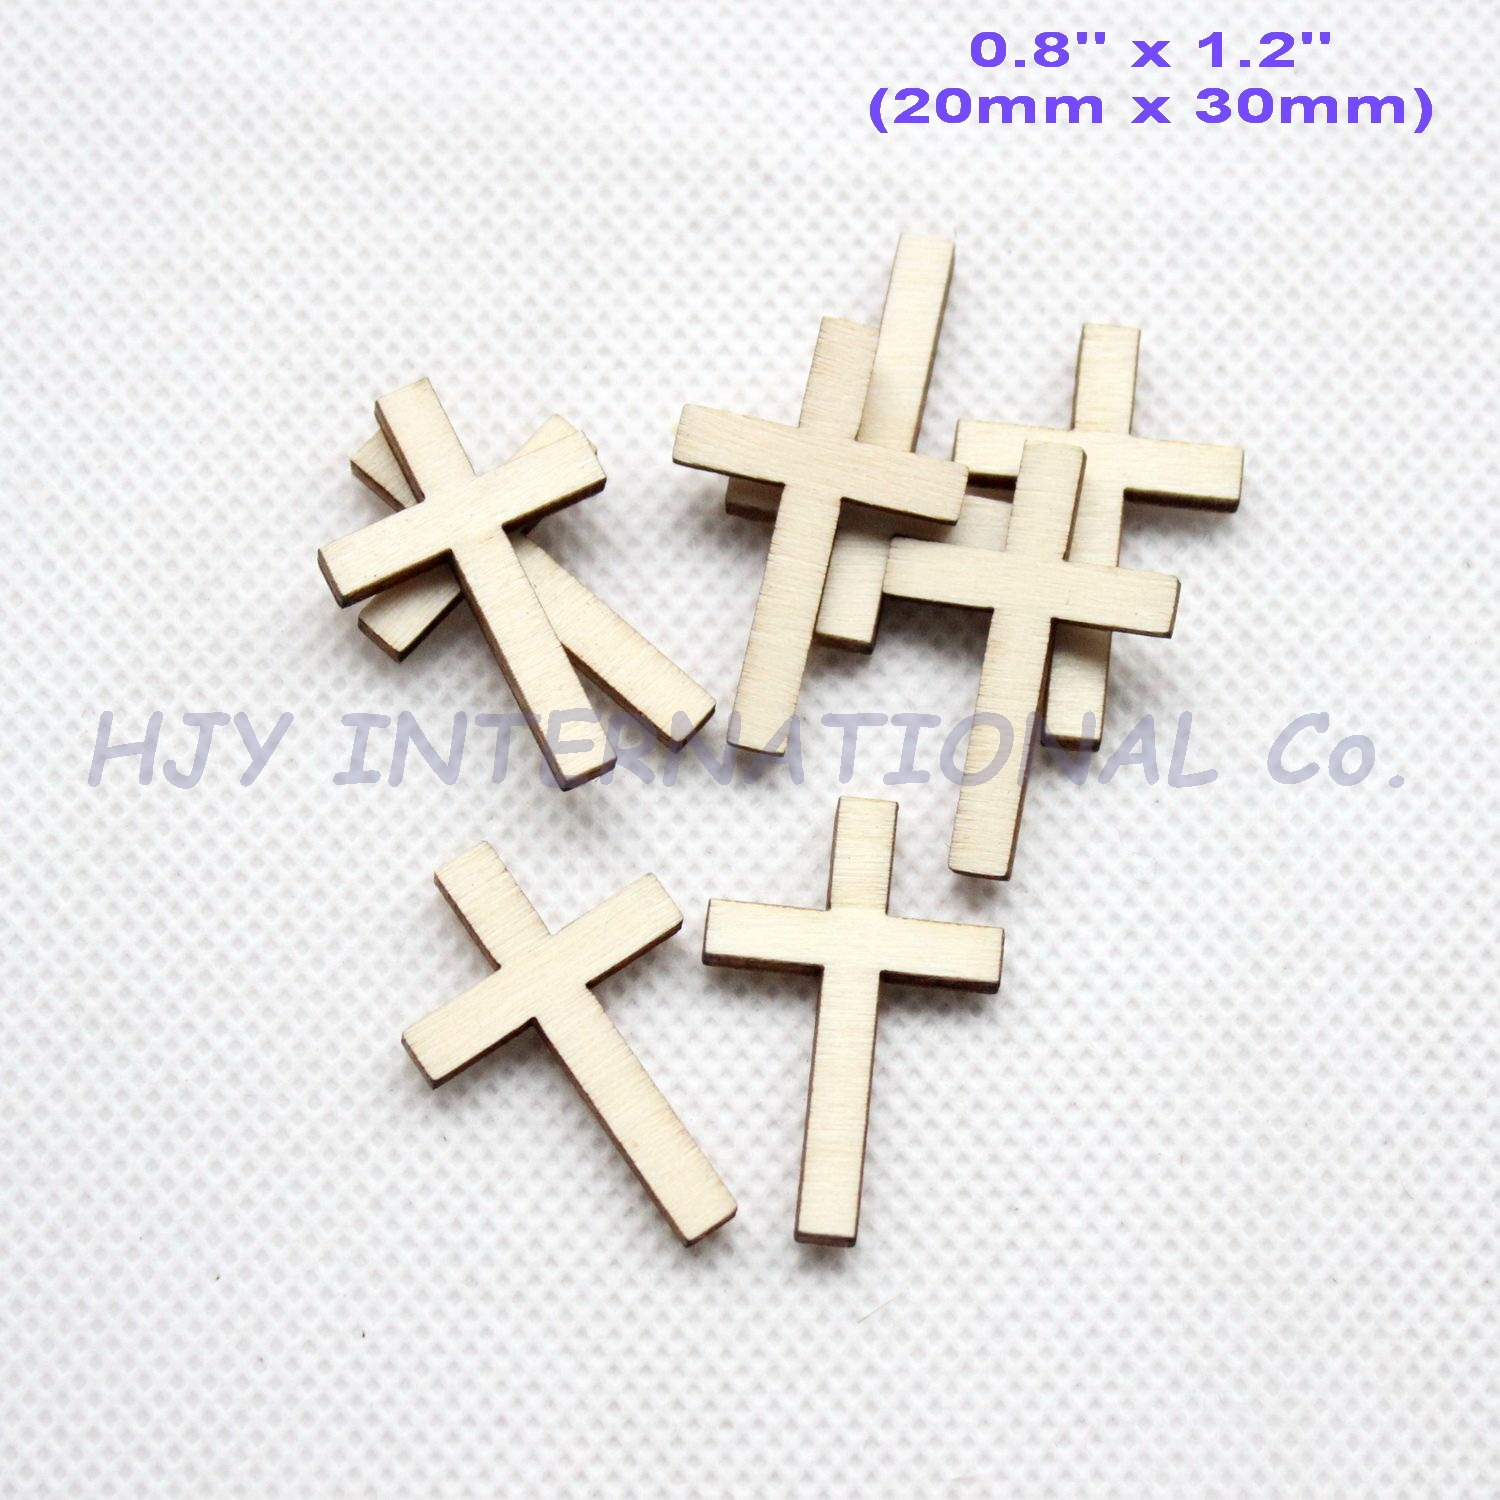 Online buy wholesale wooden cross craft from china wooden for Cheap wooden crosses for crafts